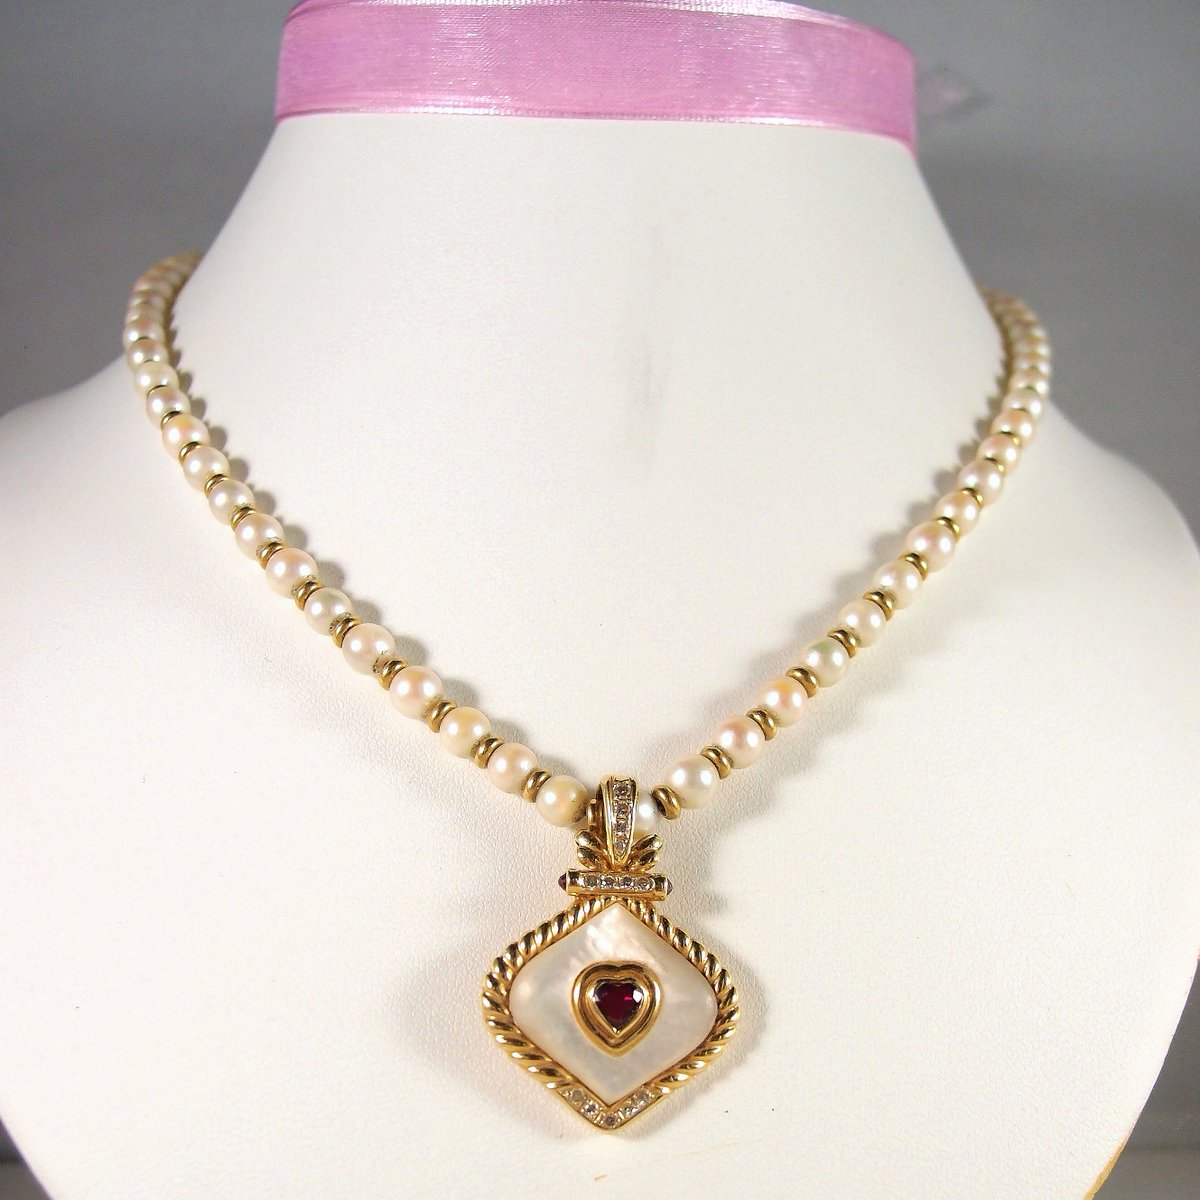 Nothing equals elegance with a pearl but another pearl #pearlsofinstagram #EstatePearl necklace with alternating #18KsolidGold beads #RemovablePendant Ruby and diamond http://ow.ly/gJ9j30pu5RL pic.twitter.com/xxnY8lmYpl